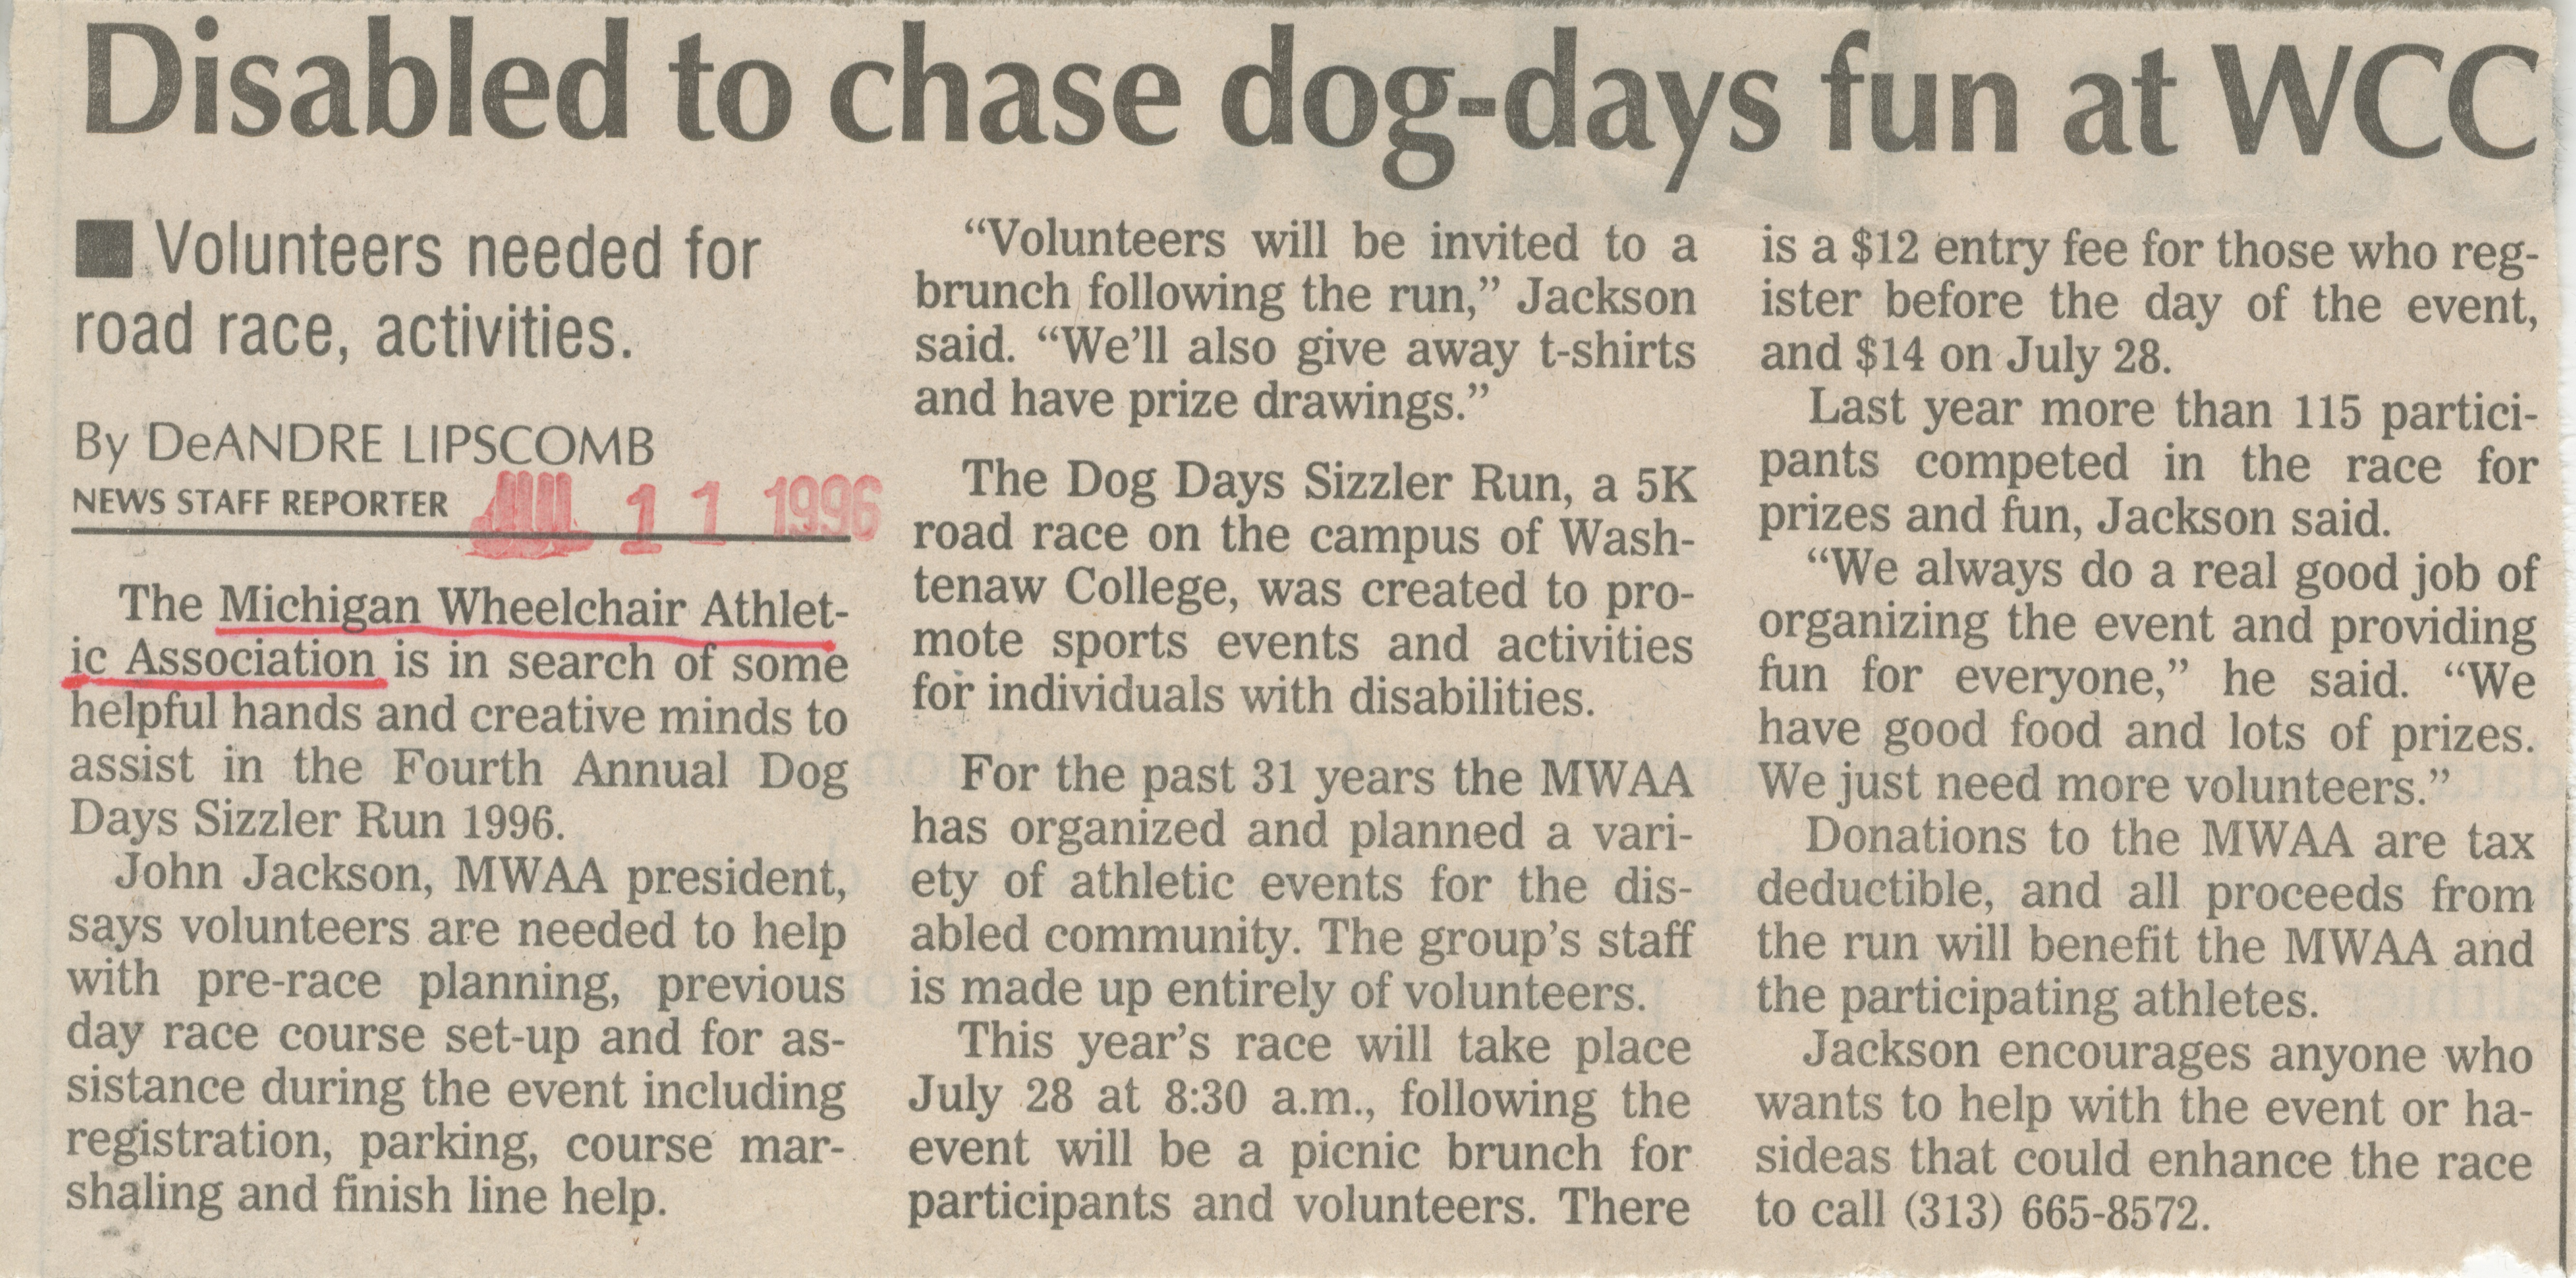 Disabled To Chase Dog-Days Fun At WCC image